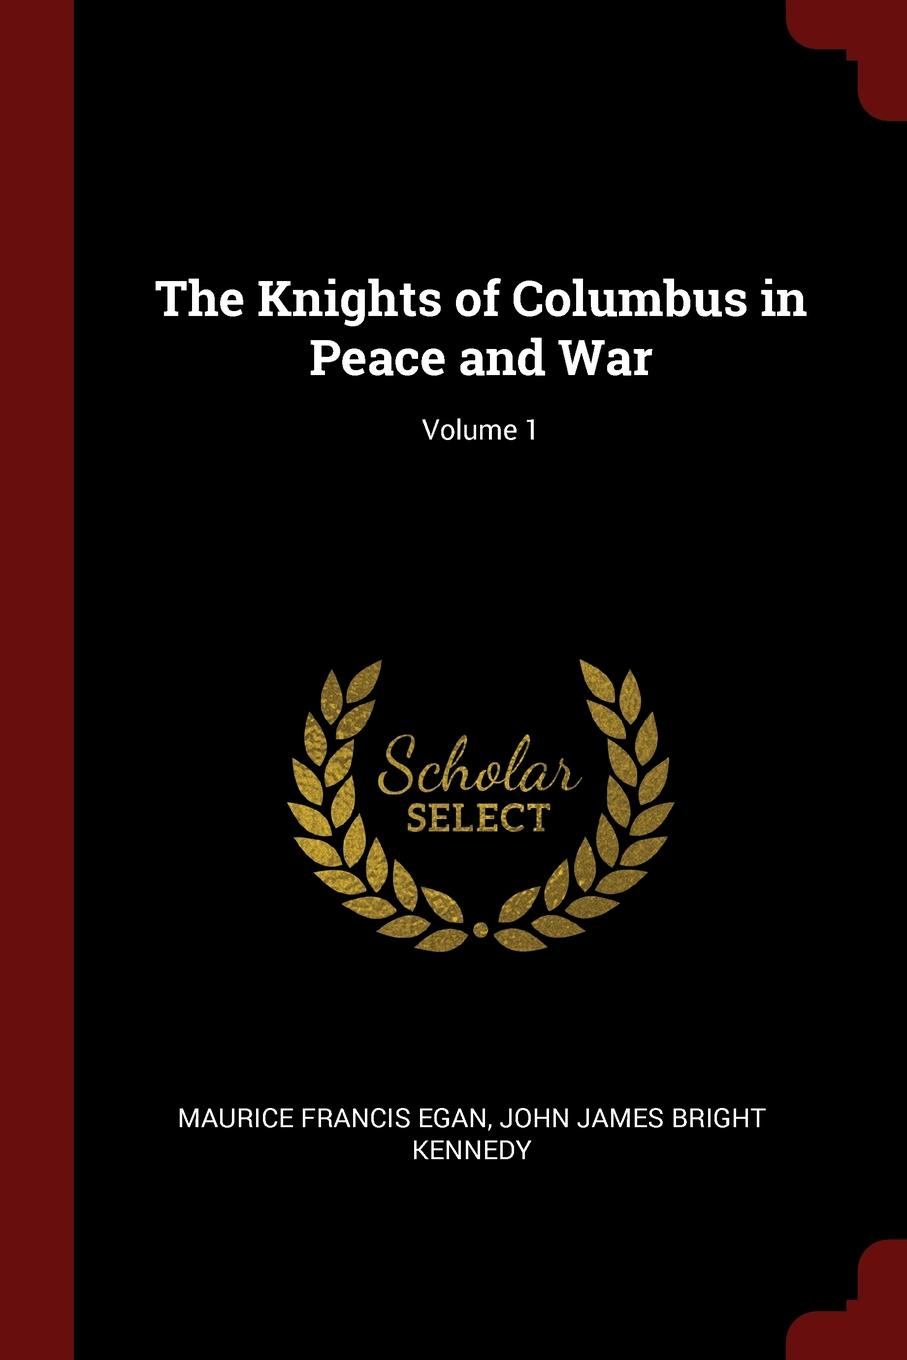 Maurice Francis Egan, John James Bright Kennedy The Knights of Columbus in Peace and War; Volume 1